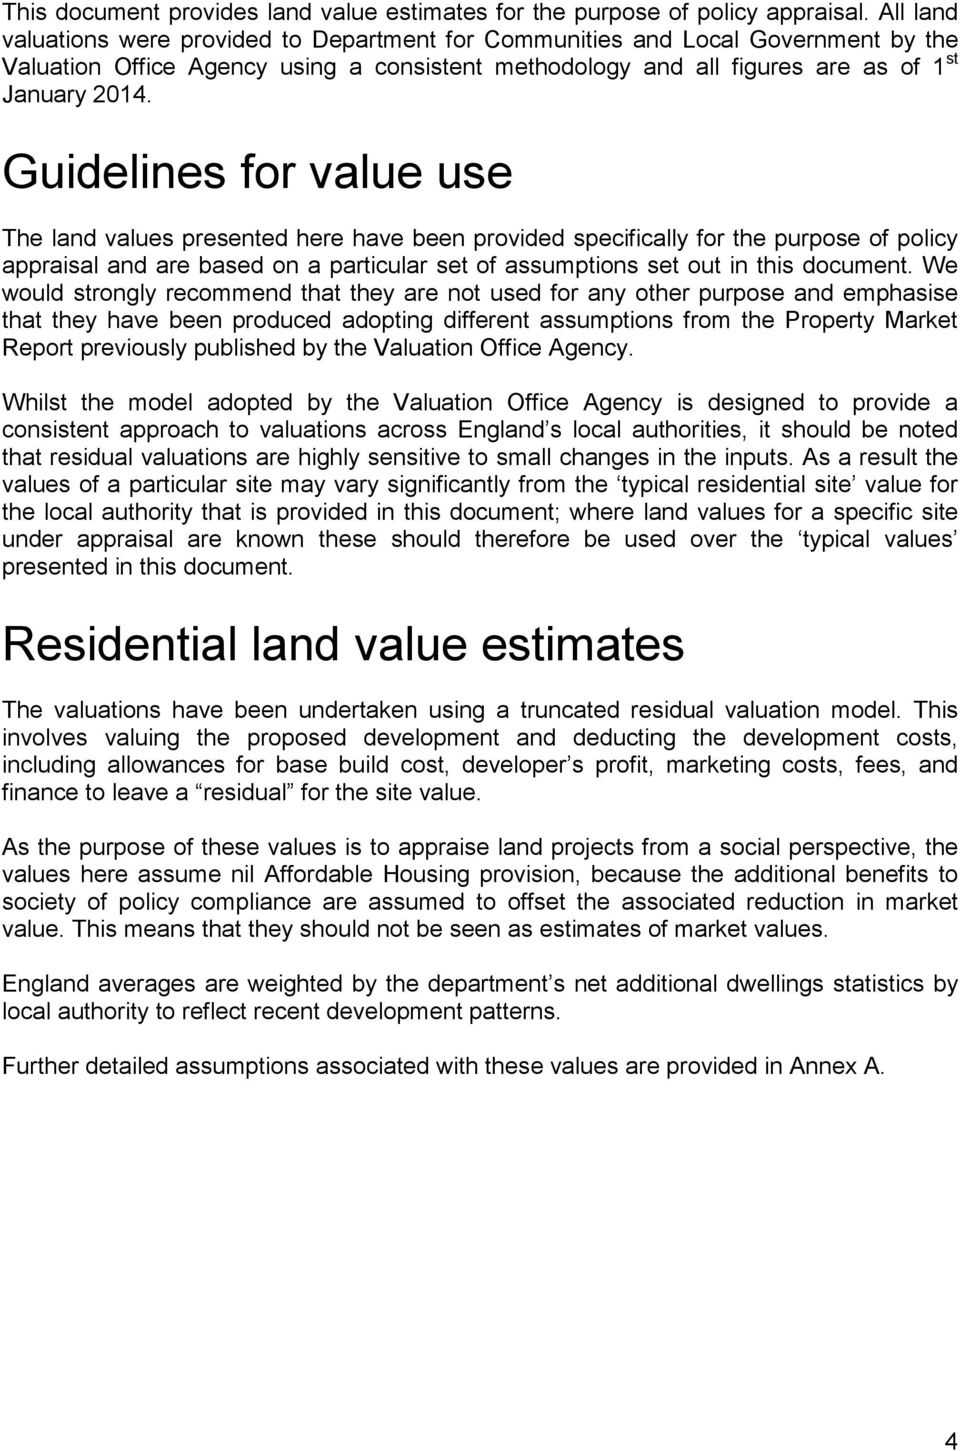 Guidelines for value use The land values presented here have been provided specifically for the purpose of policy appraisal and are based on a particular set of assumptions set out in this document.